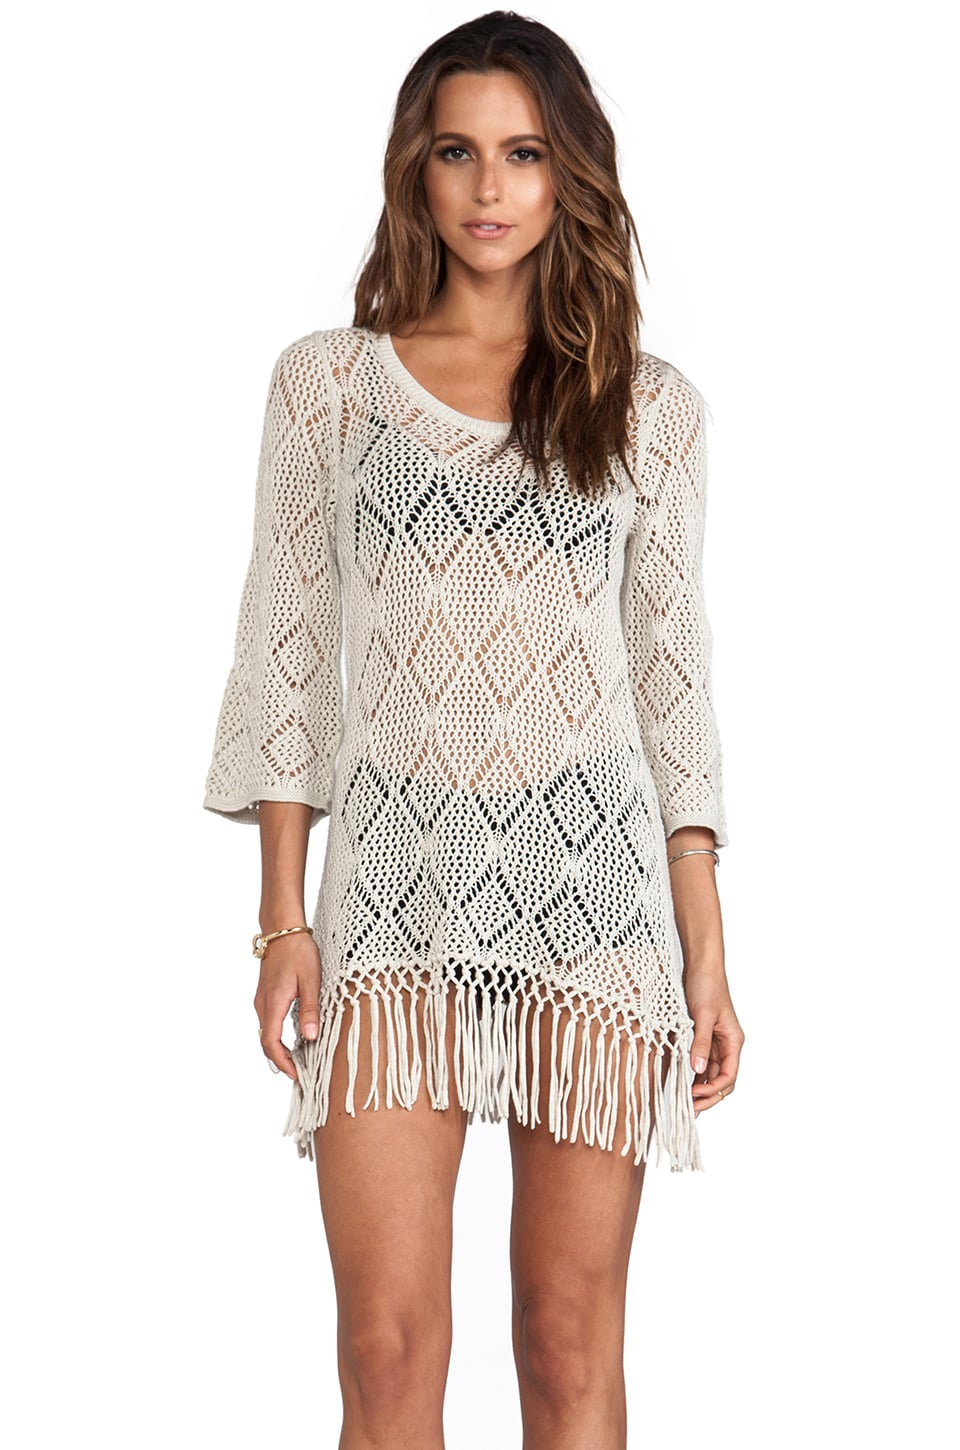 Autumn Cashmere Fringe Tunic in Hemp